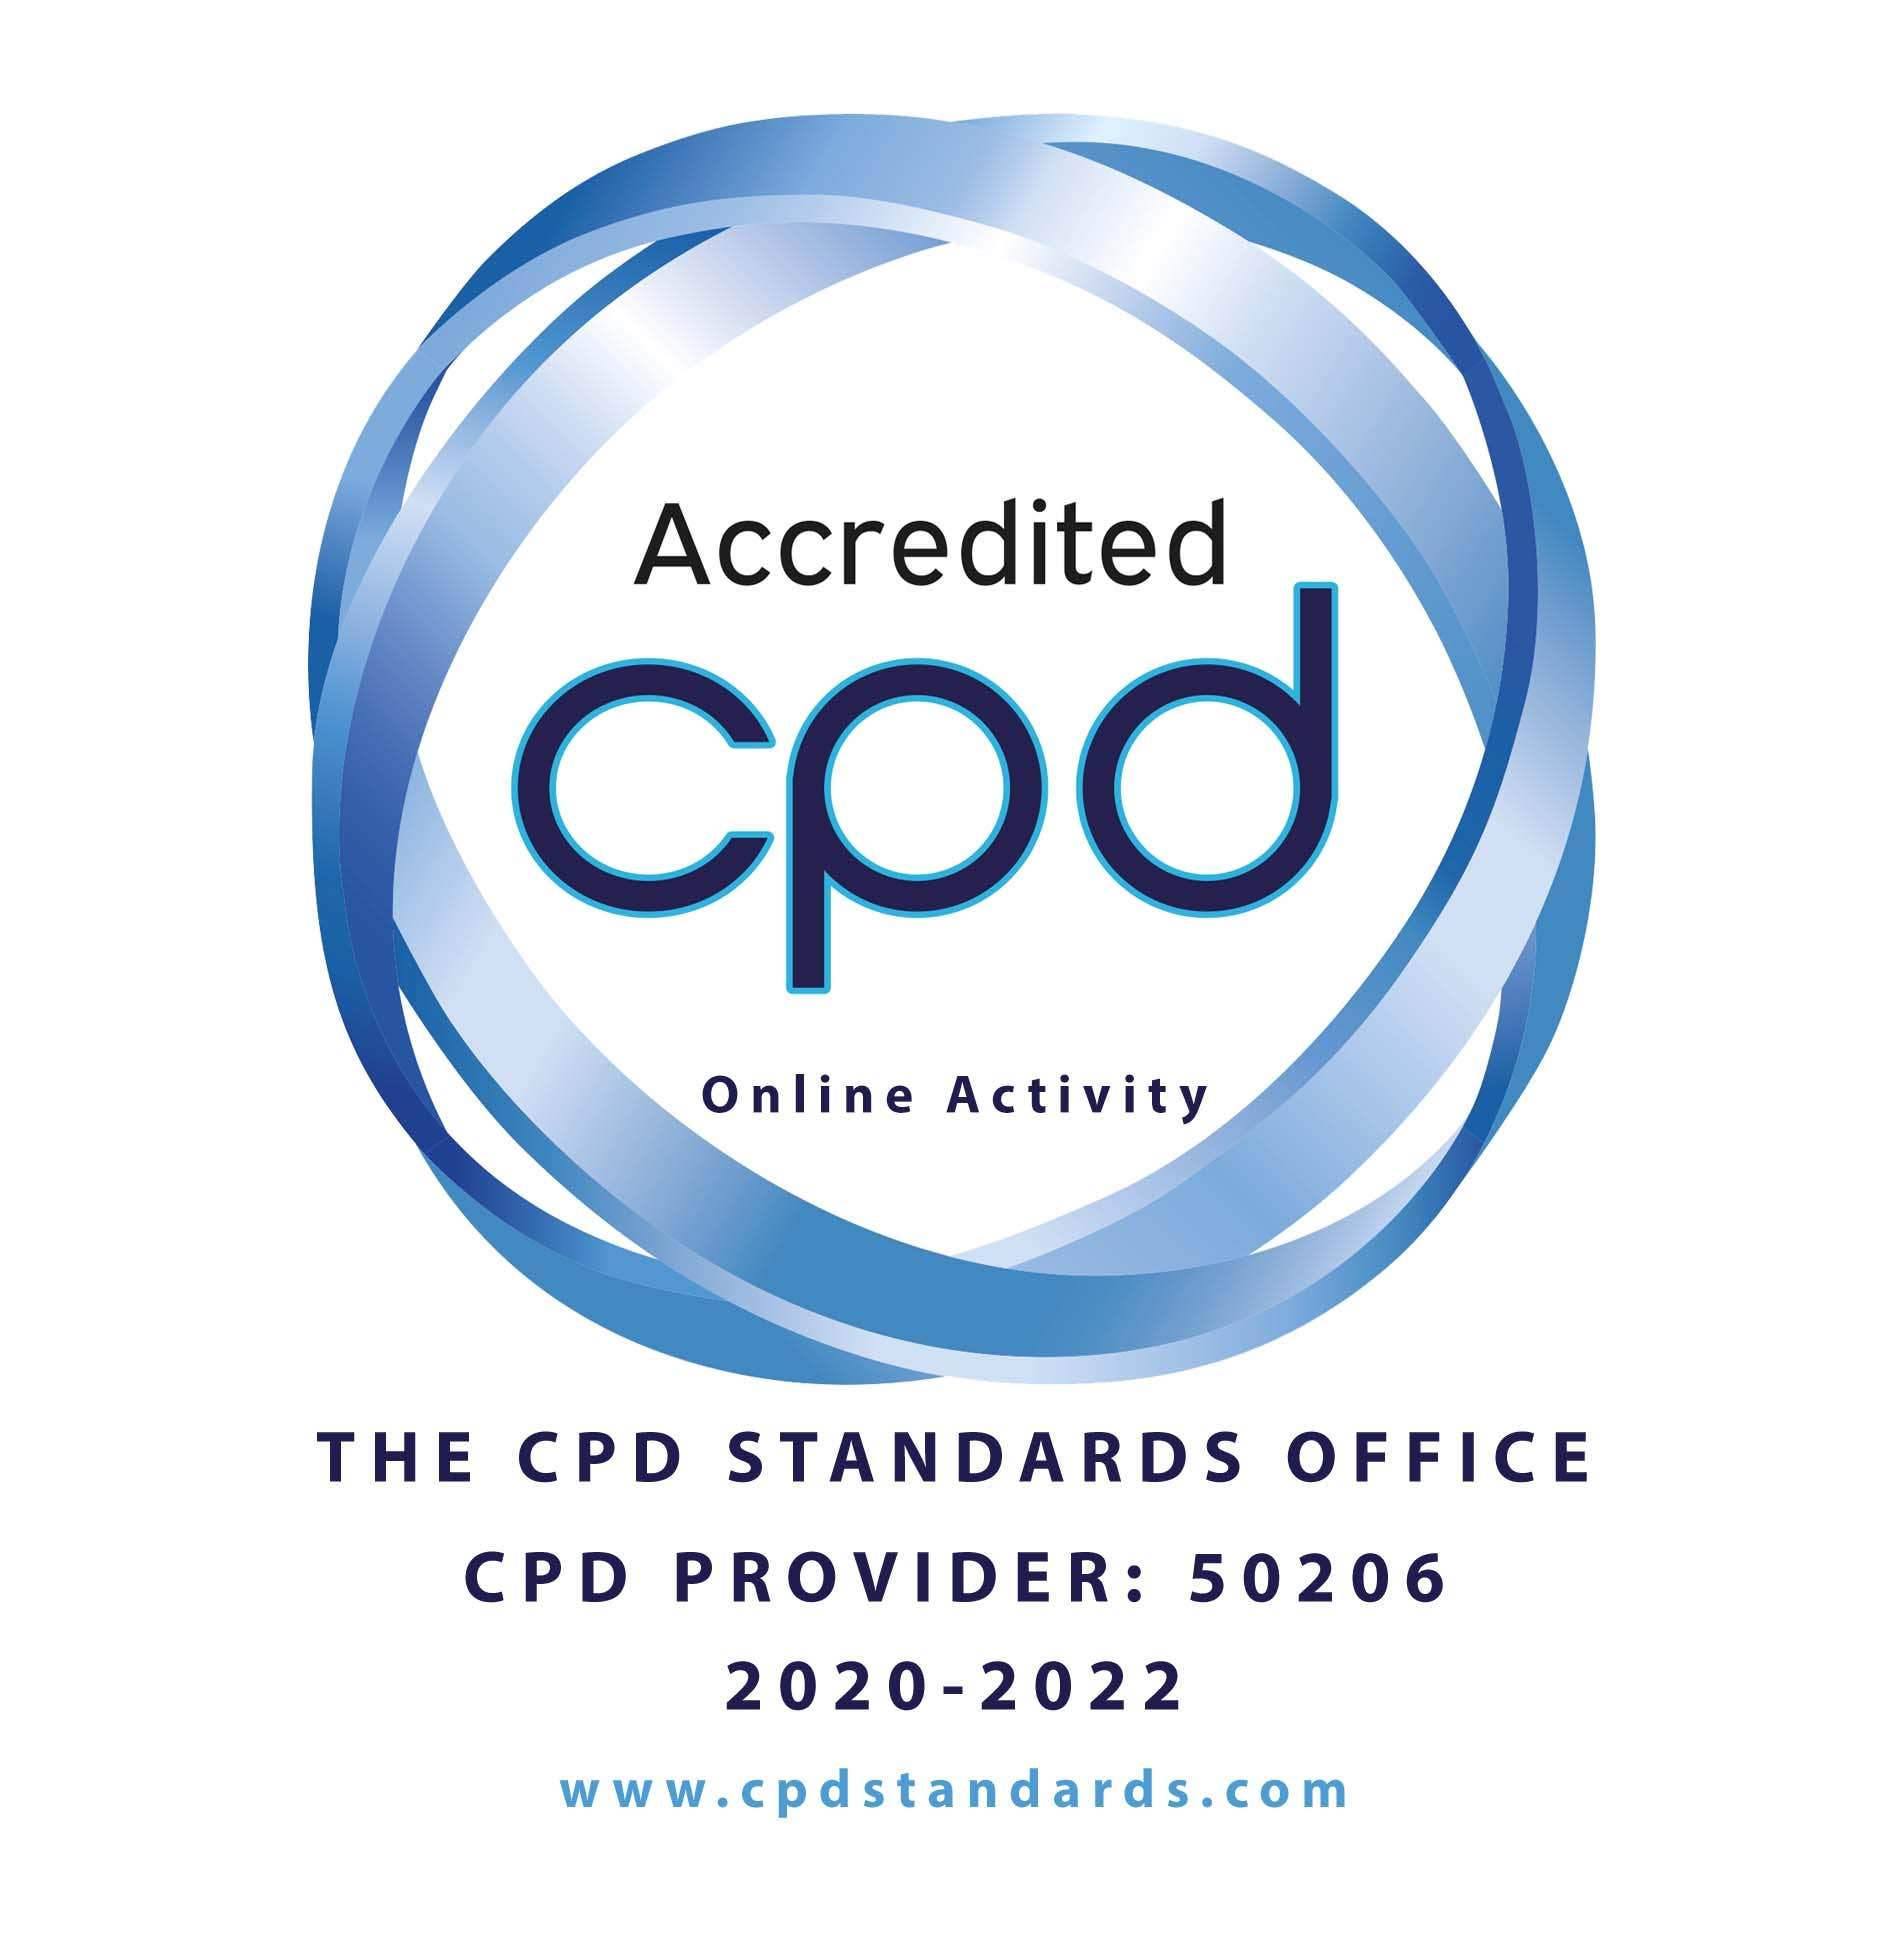 Accredited CPD Online Activity